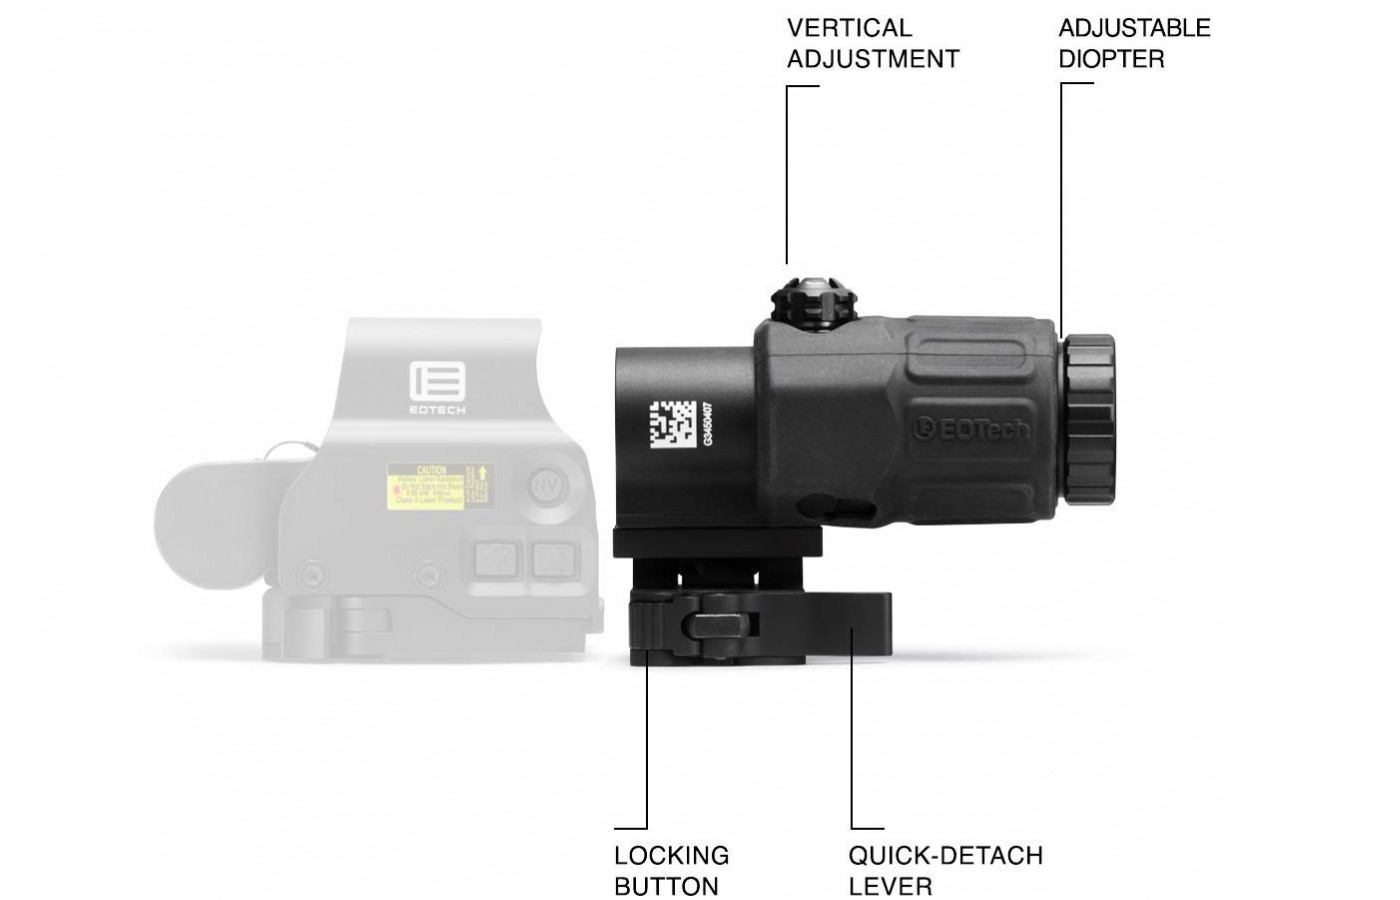 The G33 Magnifier has and adjustable Diopter